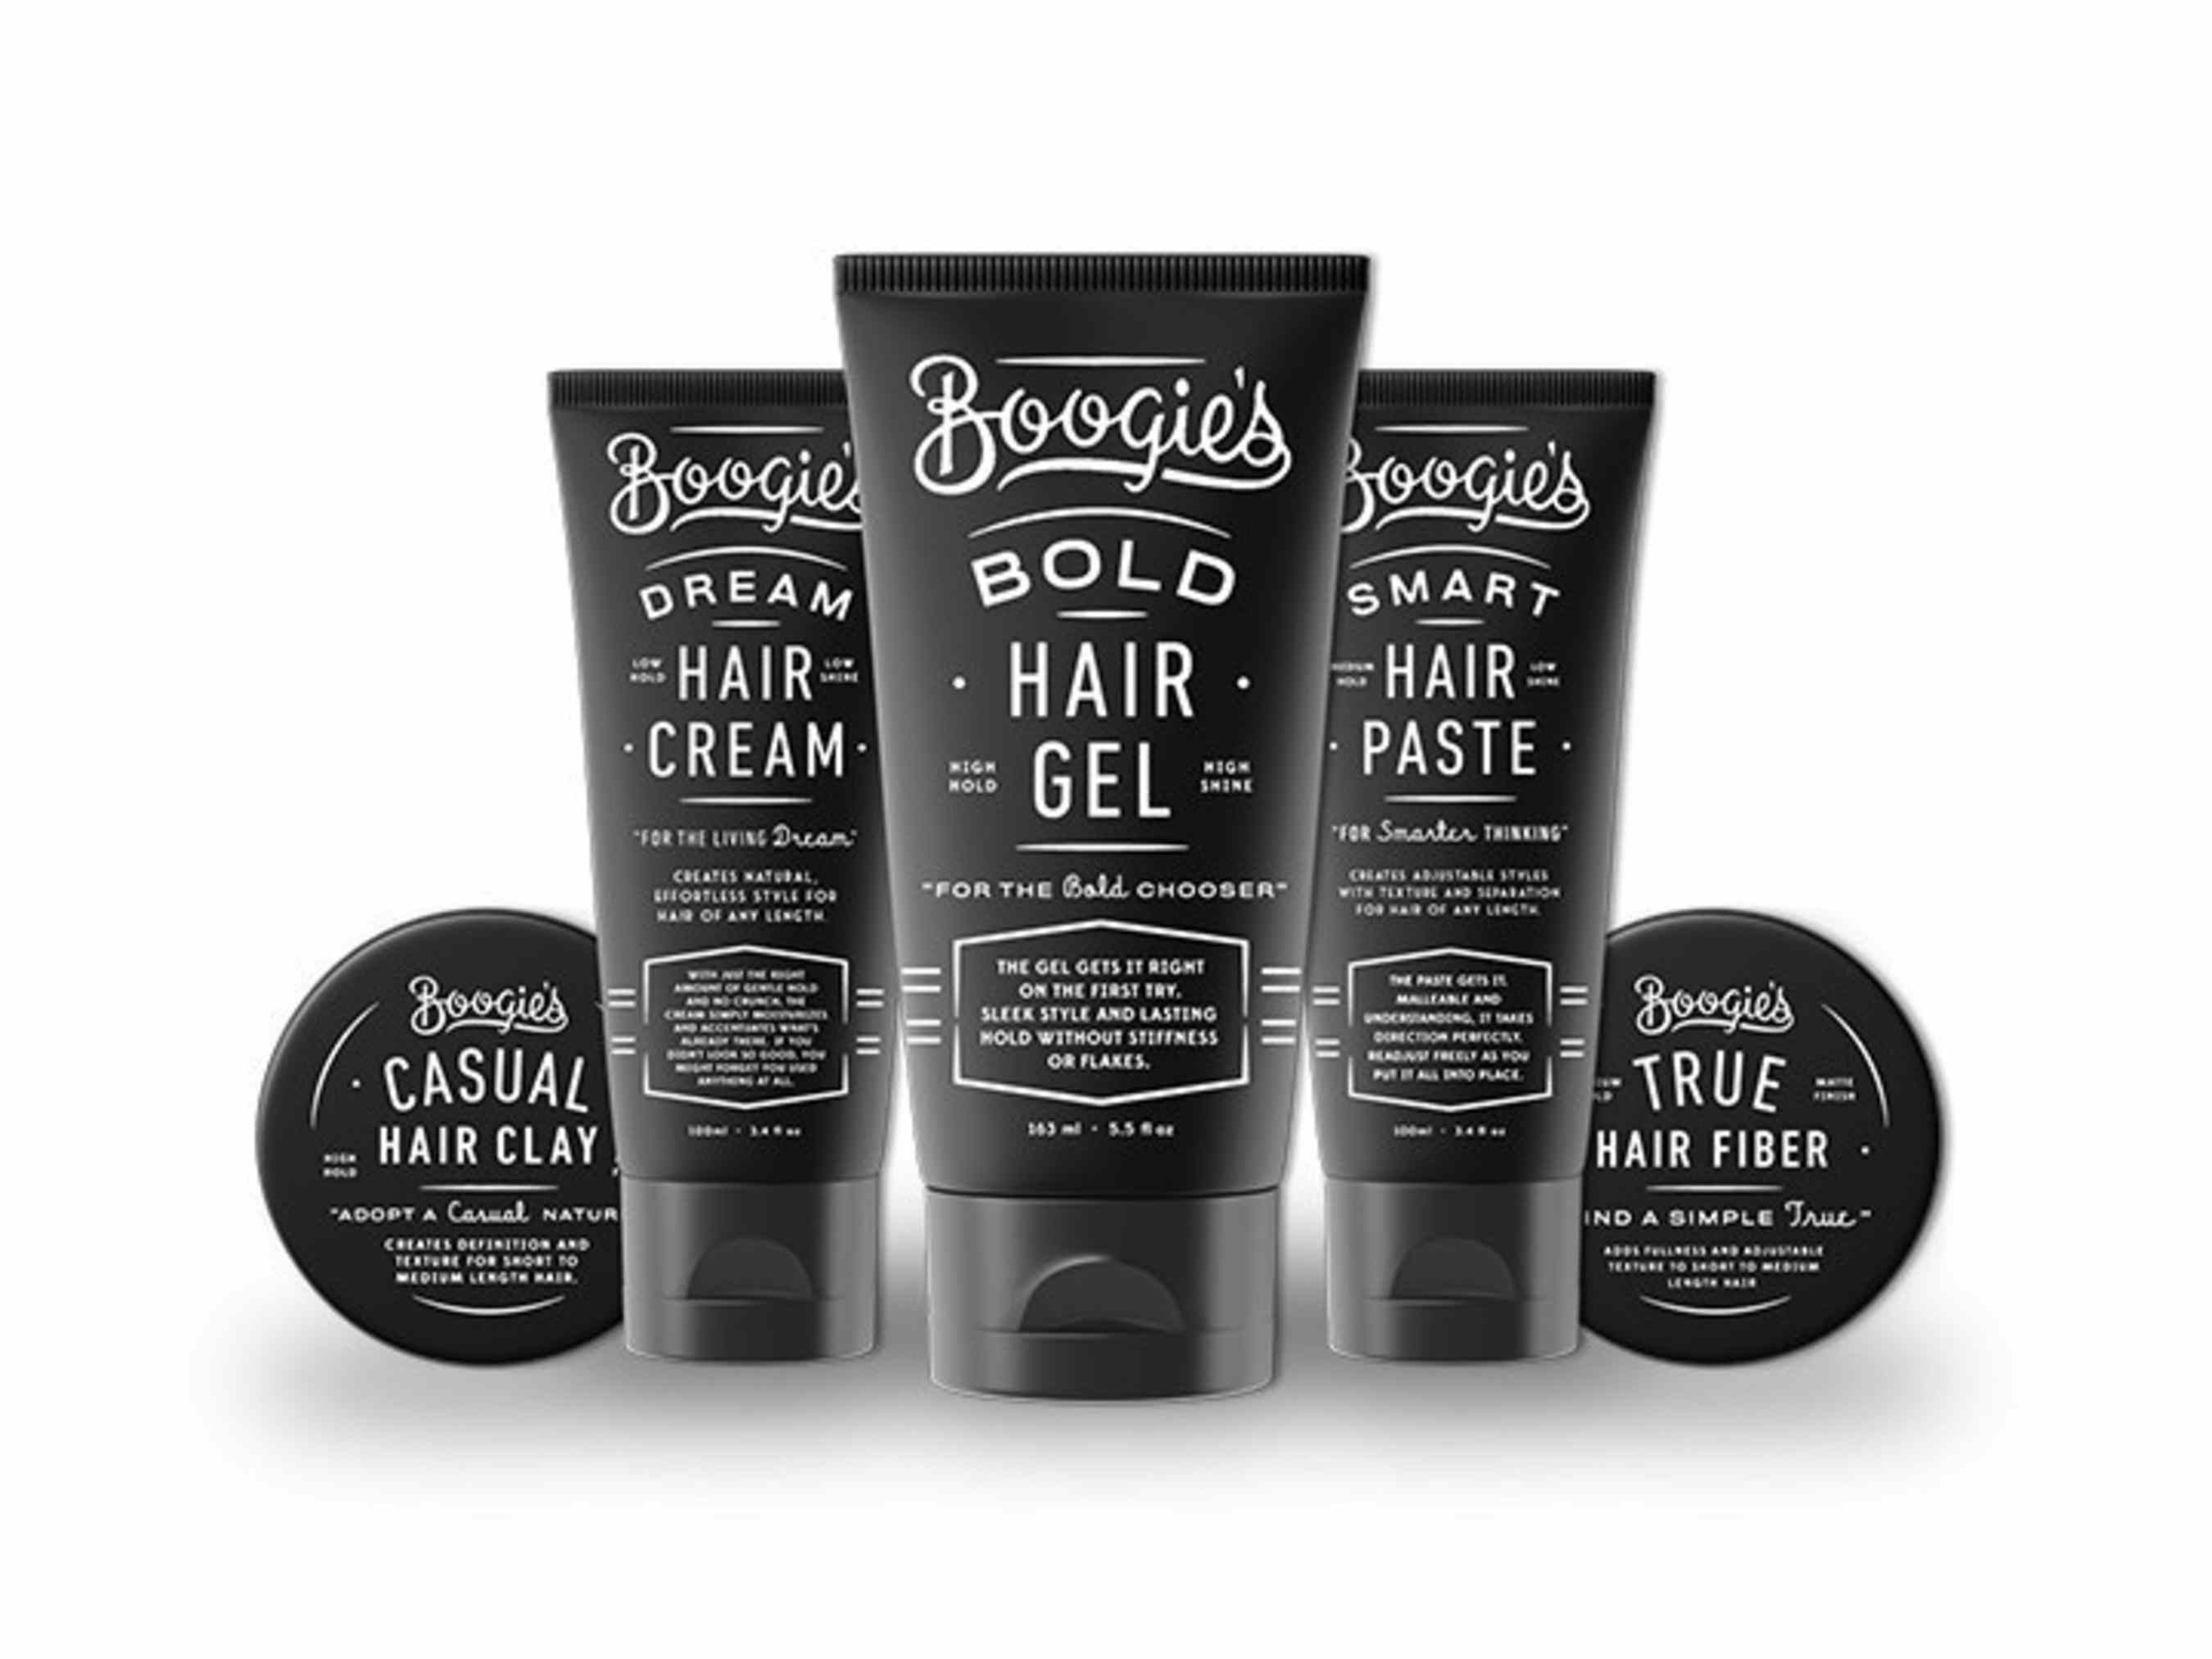 Boogie's Hair Collection by Dollar Shave Club